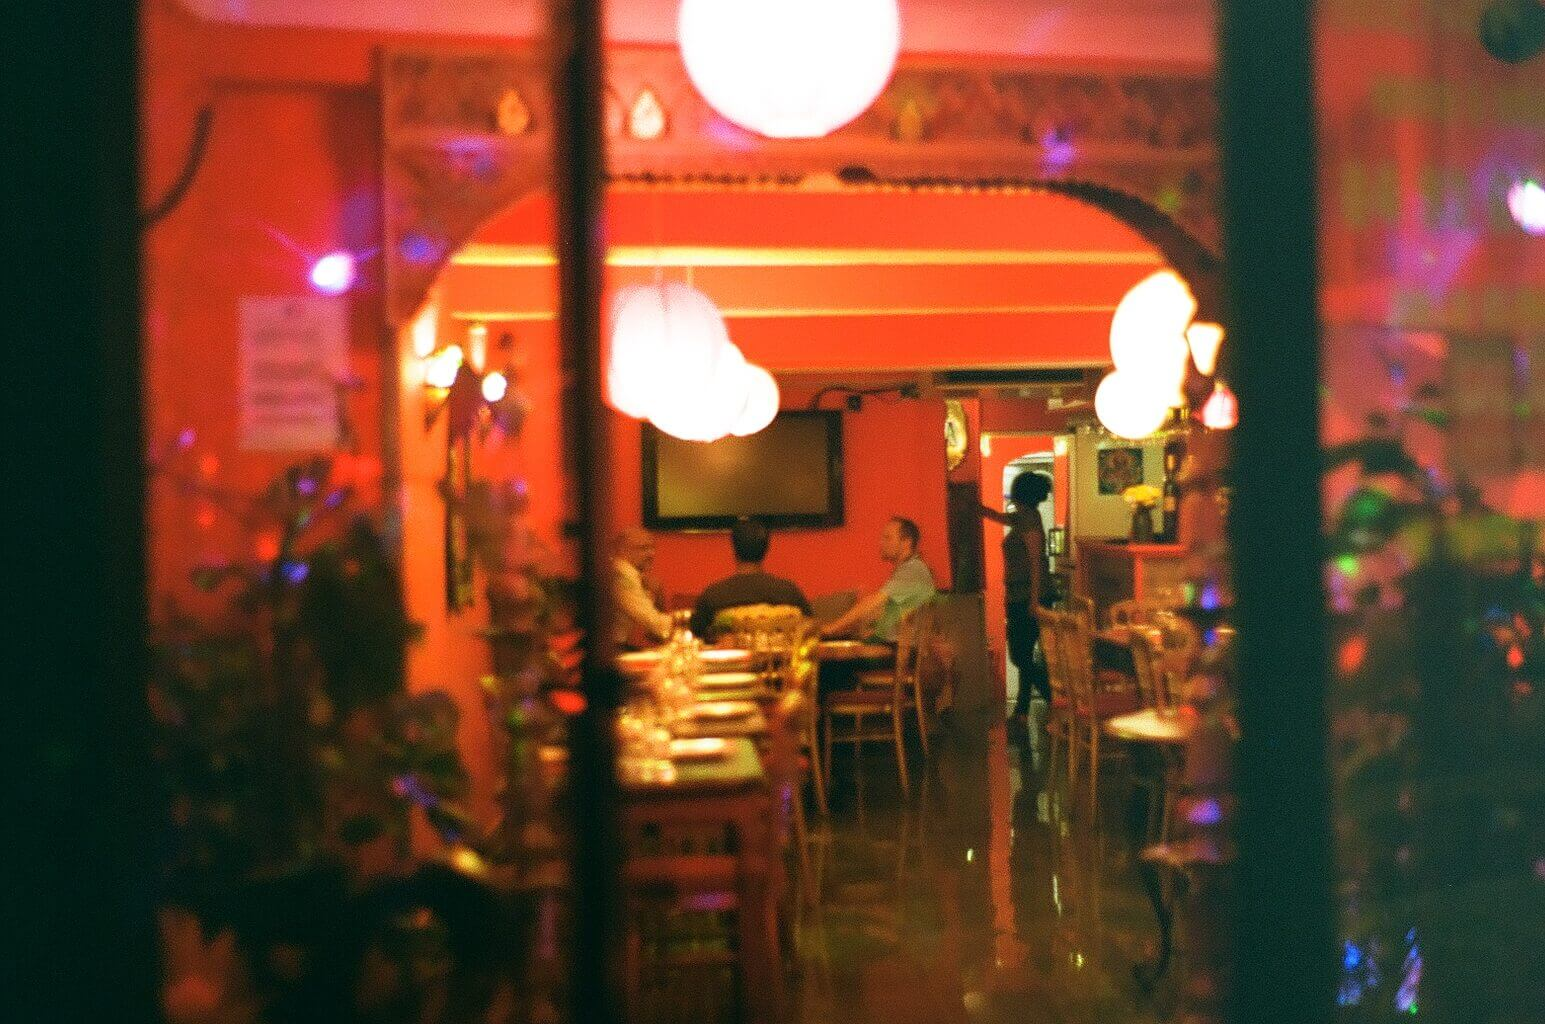 The Colors and Lights of This Restaurant Were Very Inviting